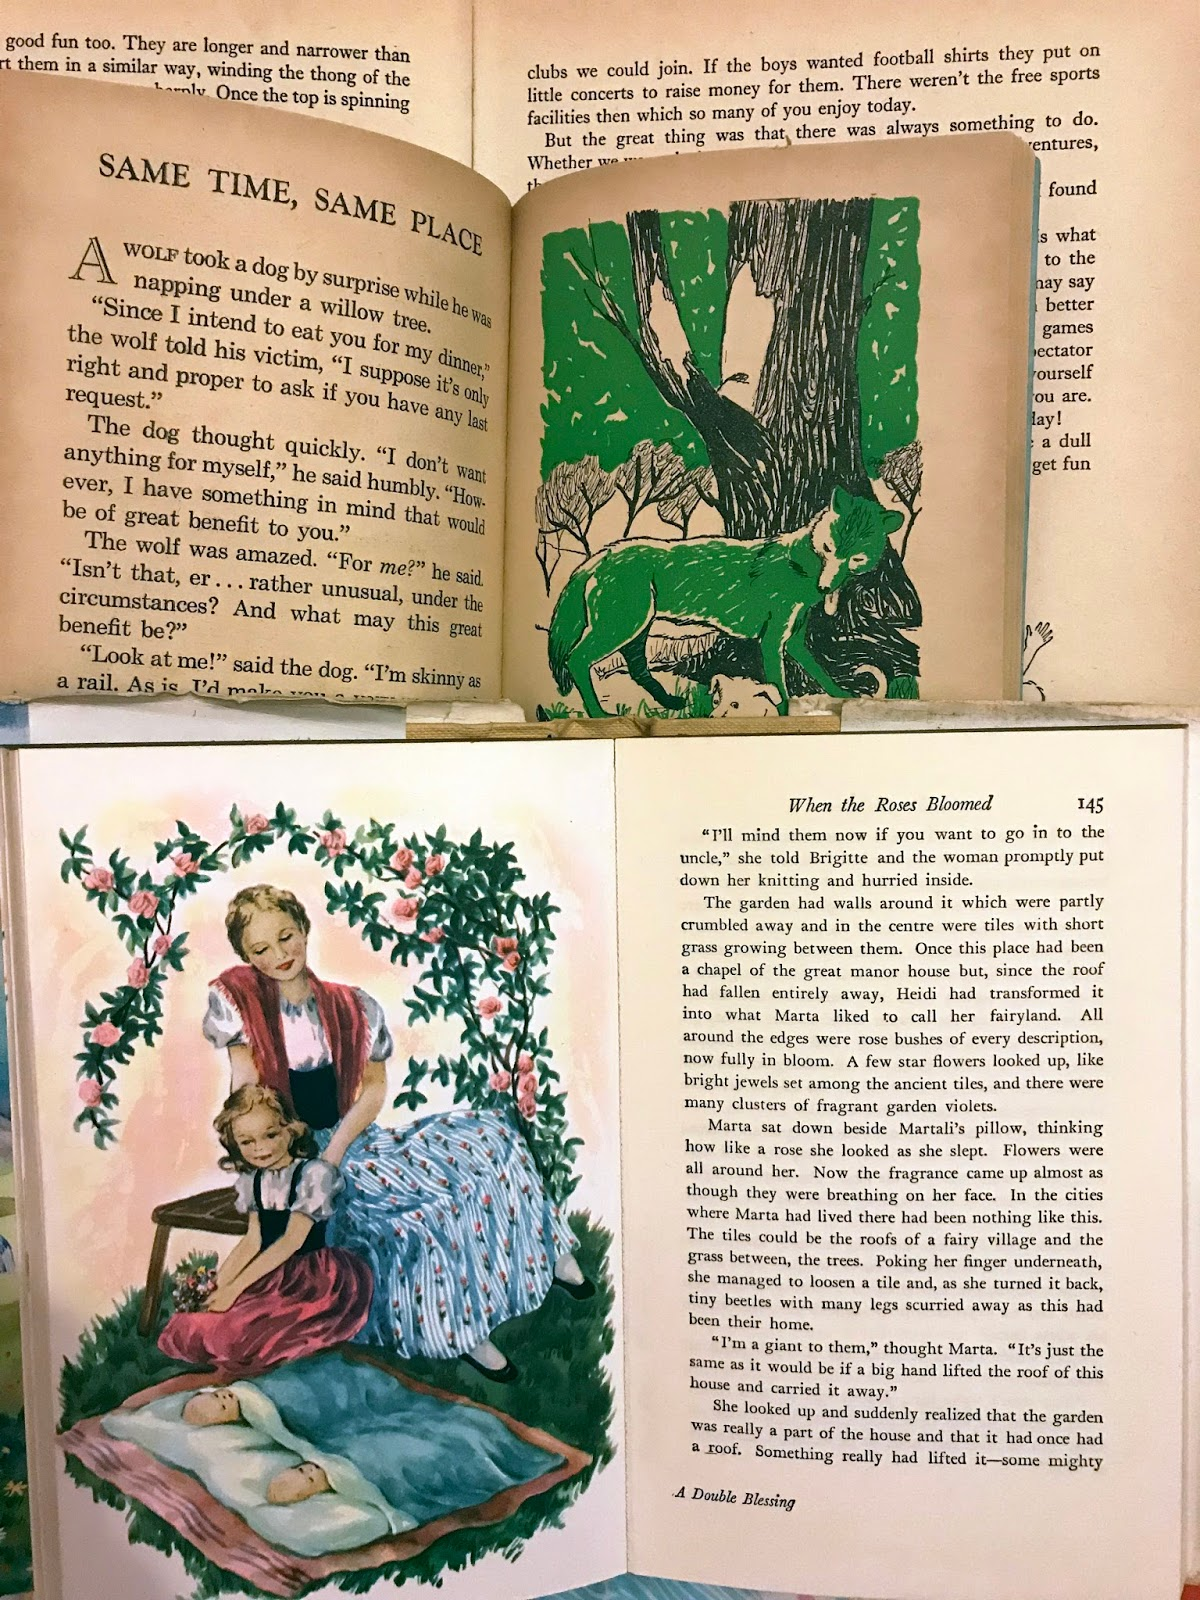 Gianne amparo illustration so lately i have been piling up and collecting a few vintage childrens books and with that ive really come to admire and appreciate illustrations in solutioingenieria Image collections